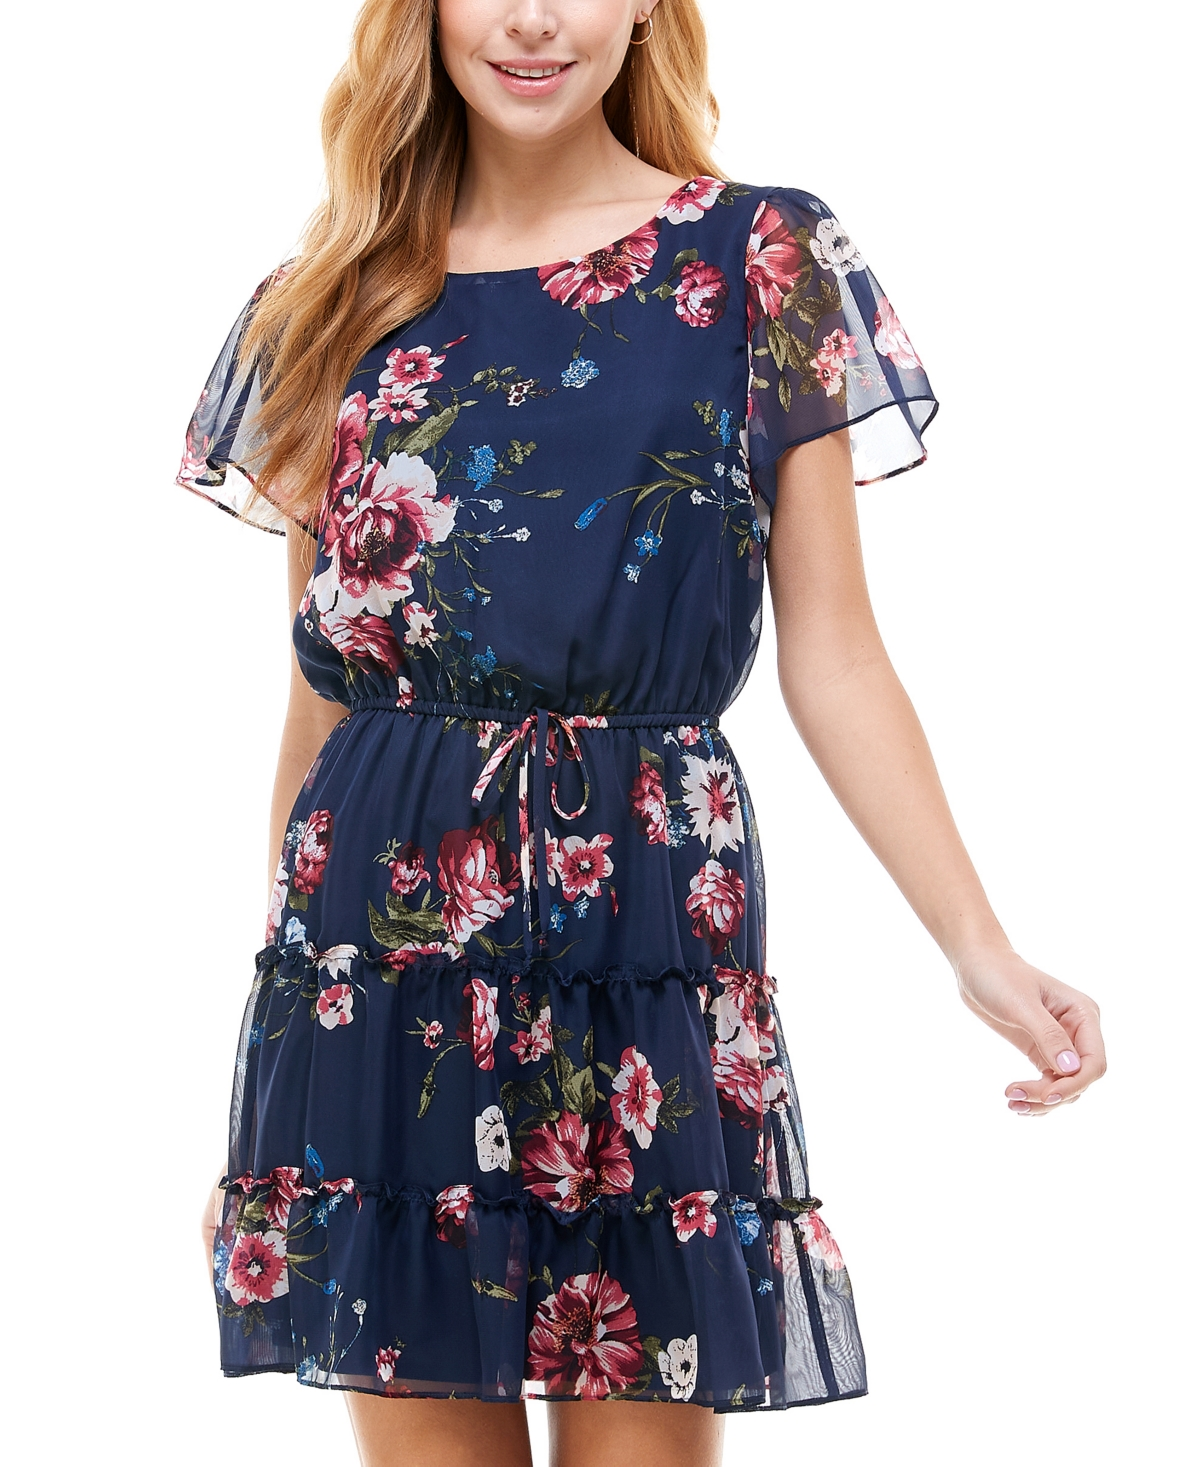 Crystal Doll Juniors' Printed Tiered Fit & Flare Dress